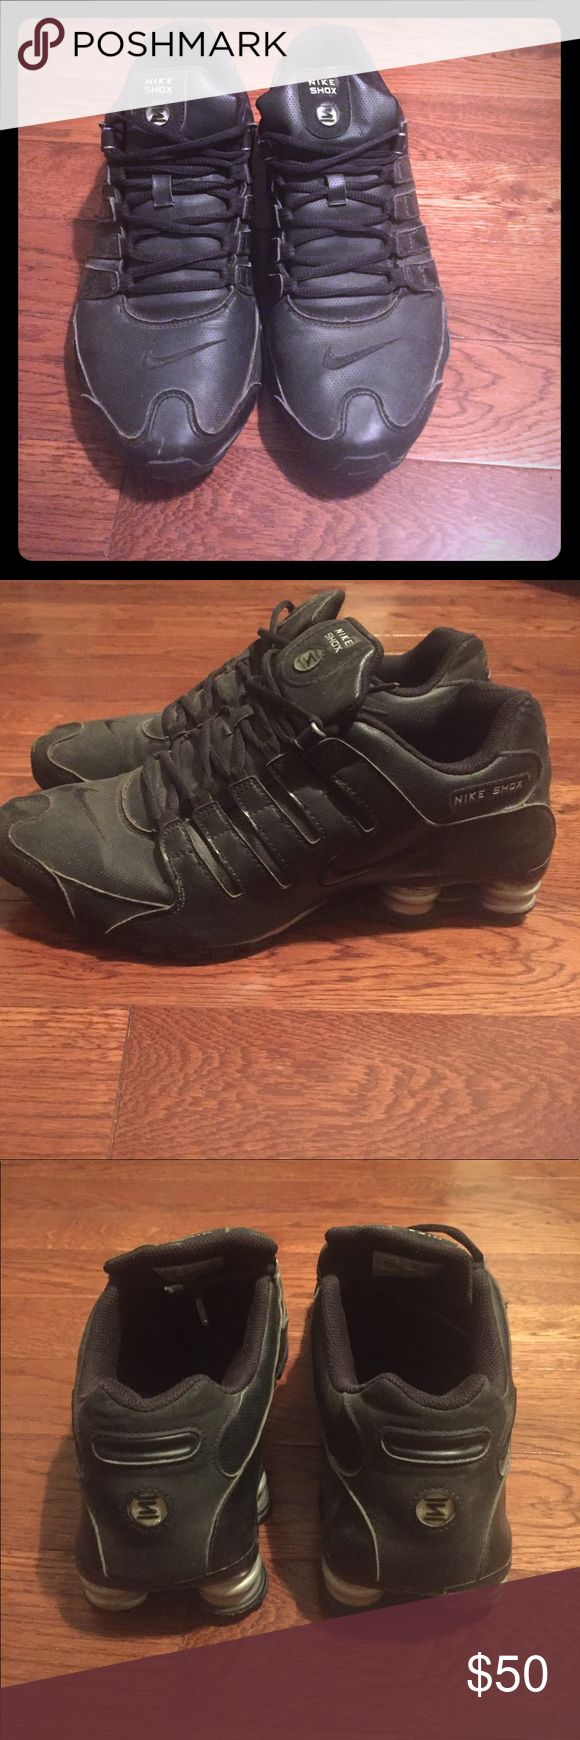 Nike Shox All black Nike Shox, size 12, lightly worn and in very good condition Nike Shoes Sneakers